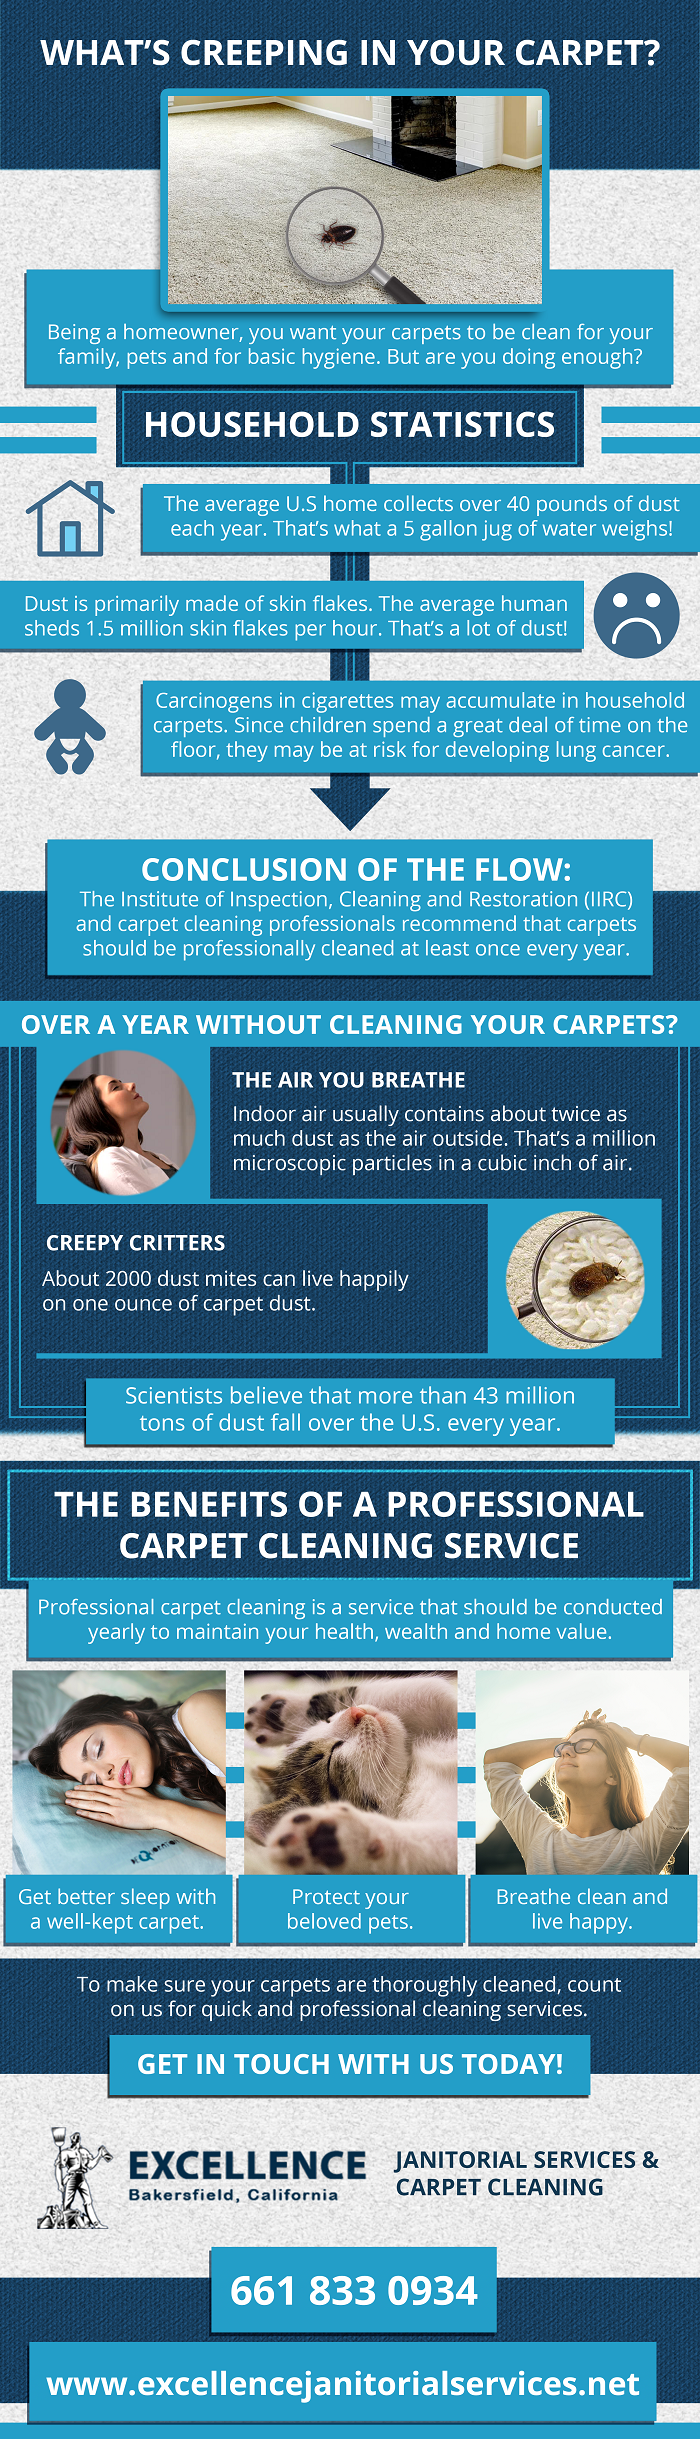 Whats Creeping In Your Carpet 3